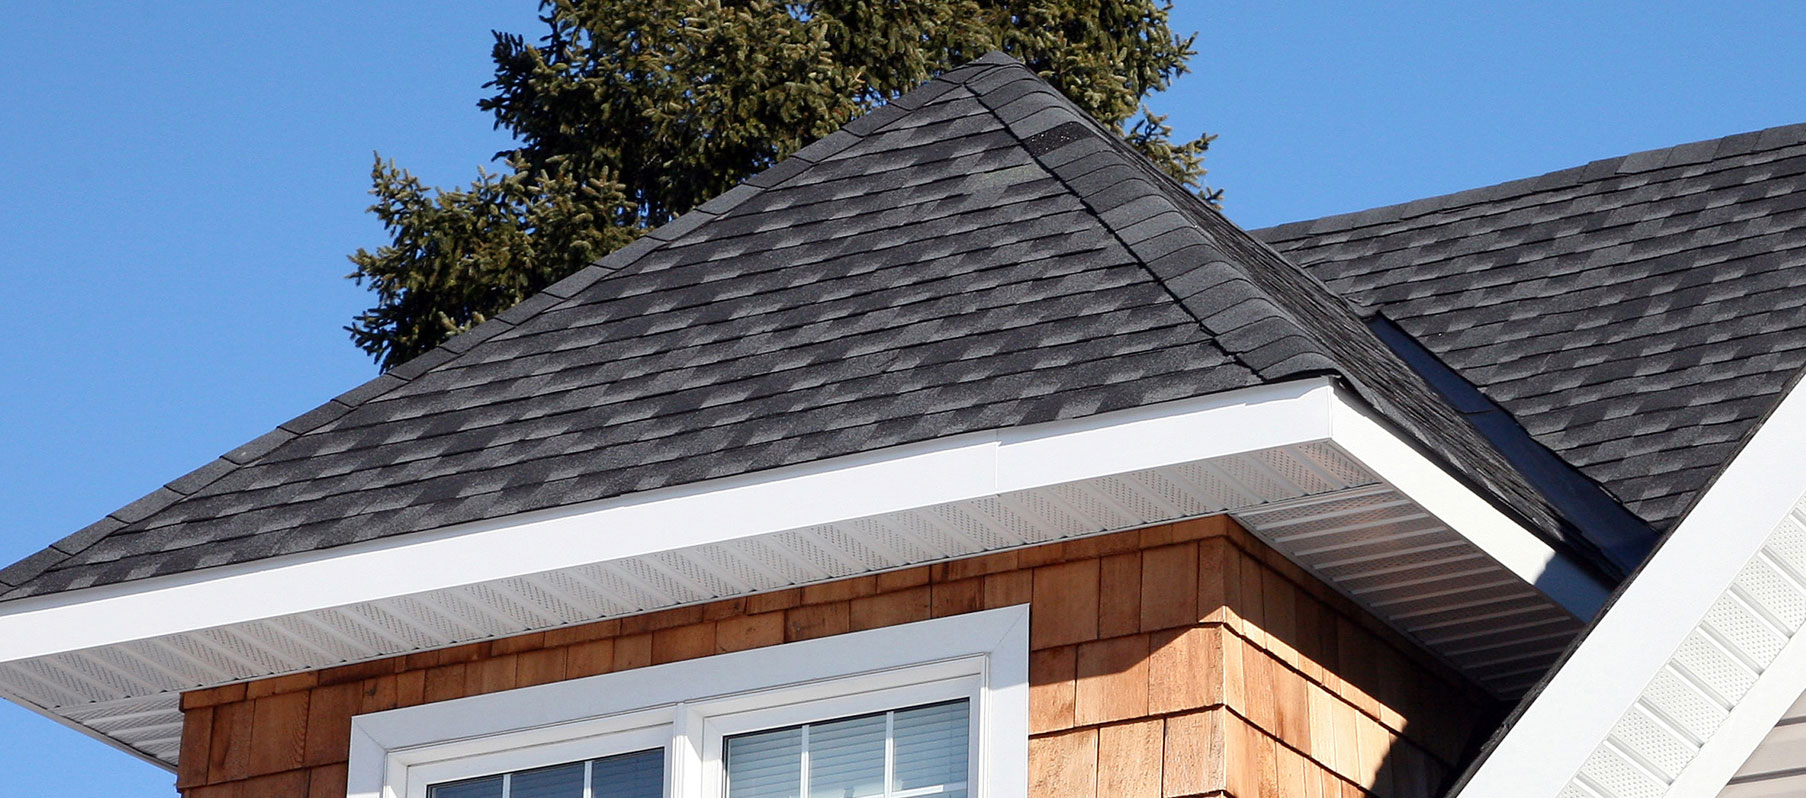 Efficient Options For a Hail Broken Roof